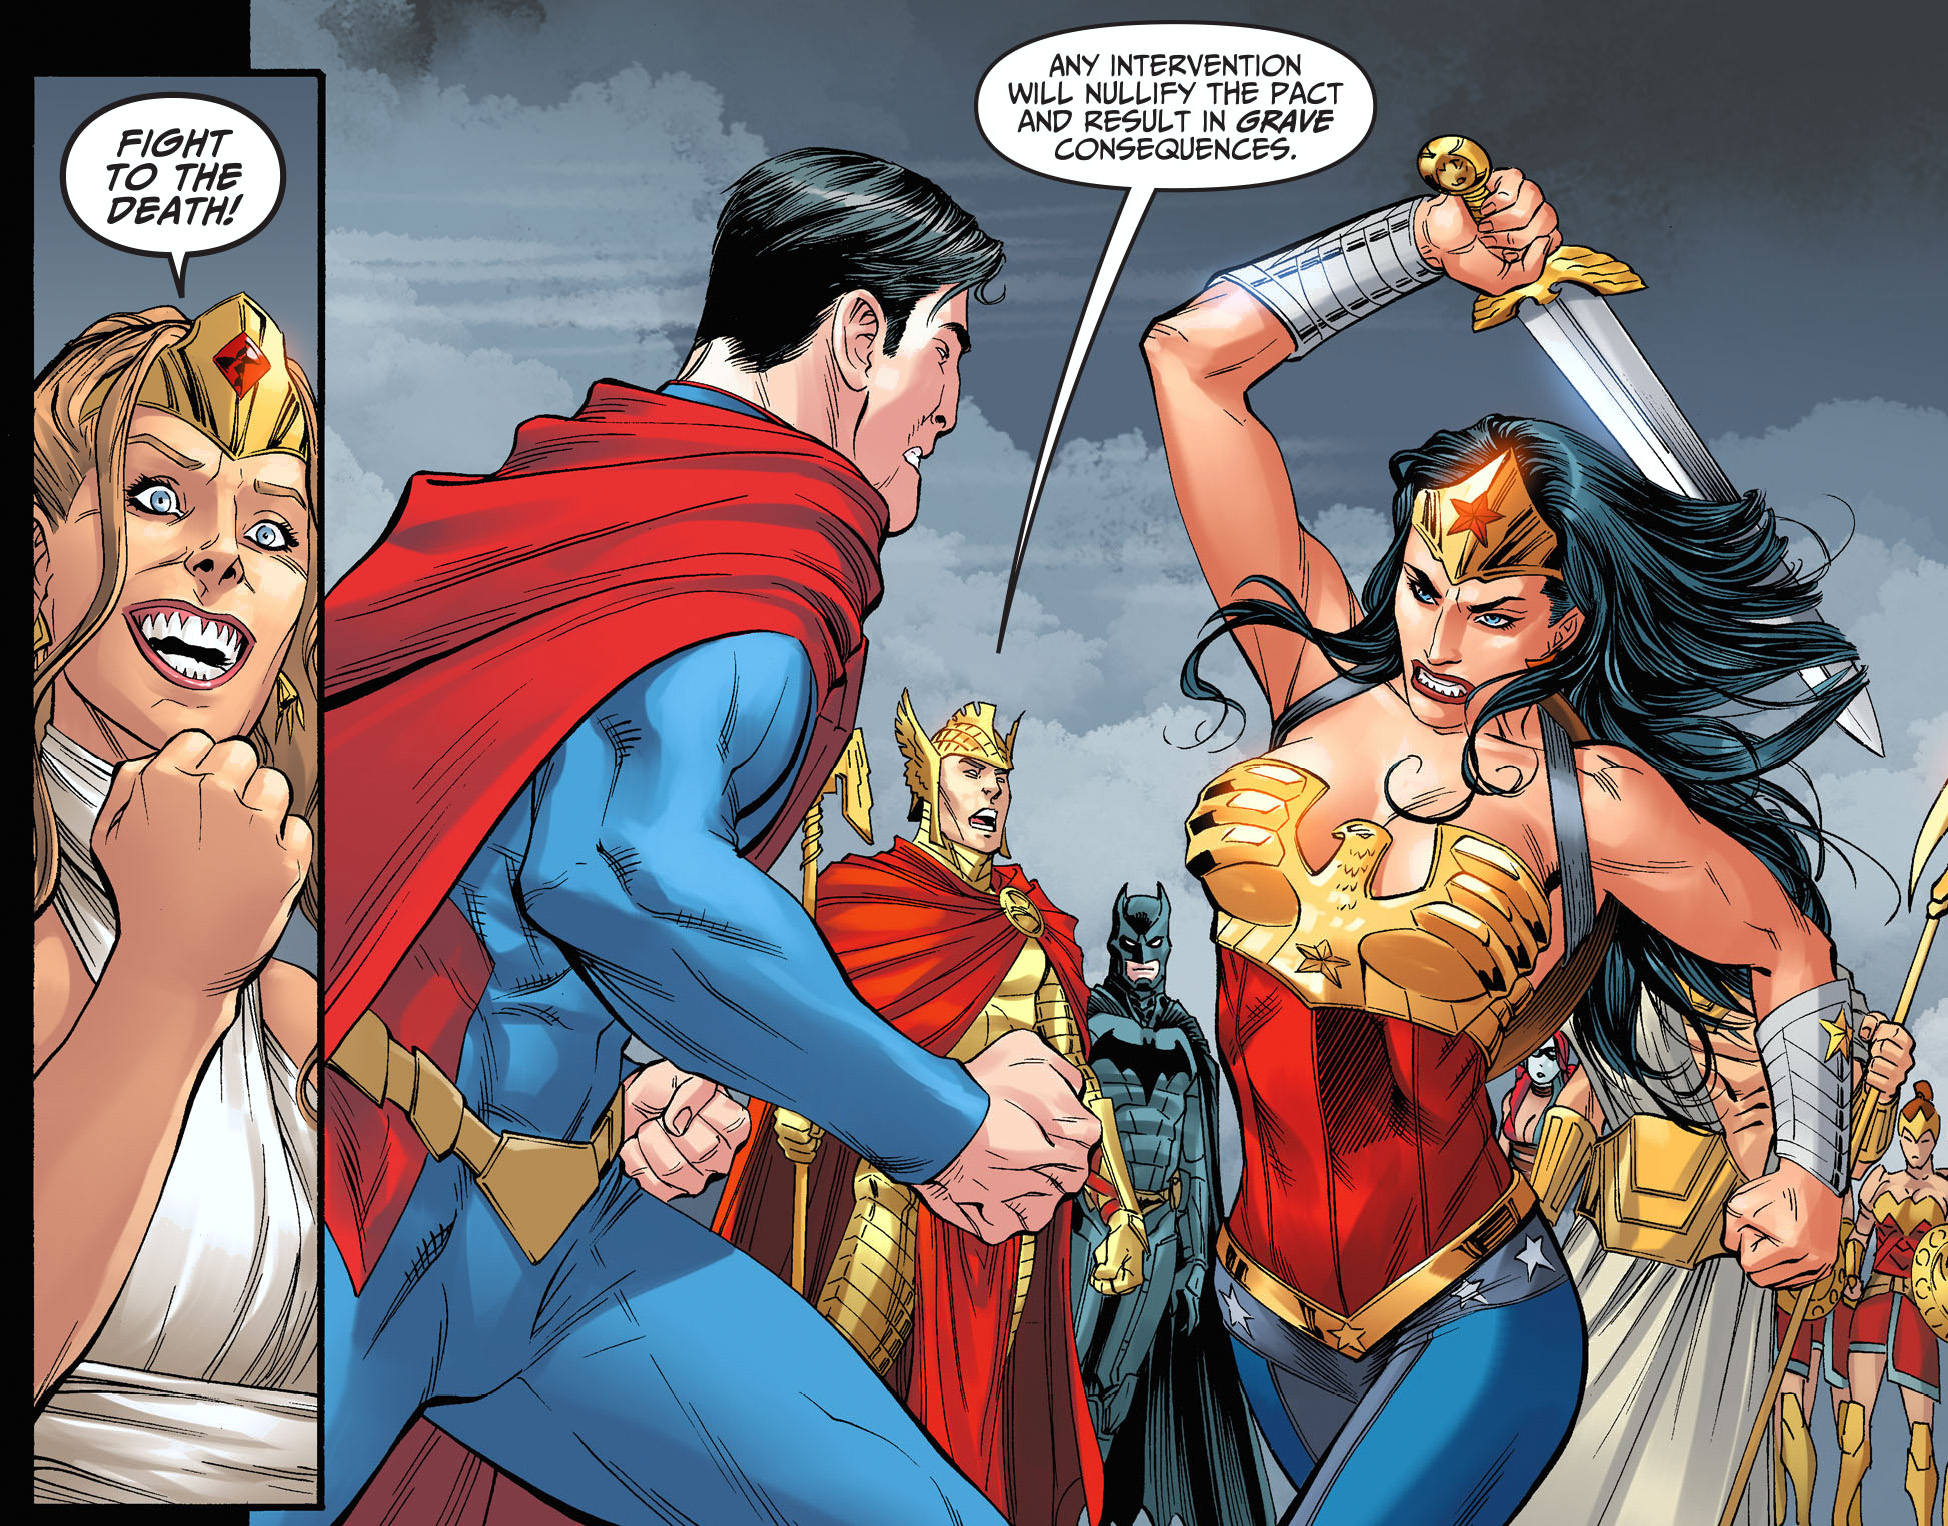 Superman Vs Wonder Woman Injustice Gods Among Us -9745